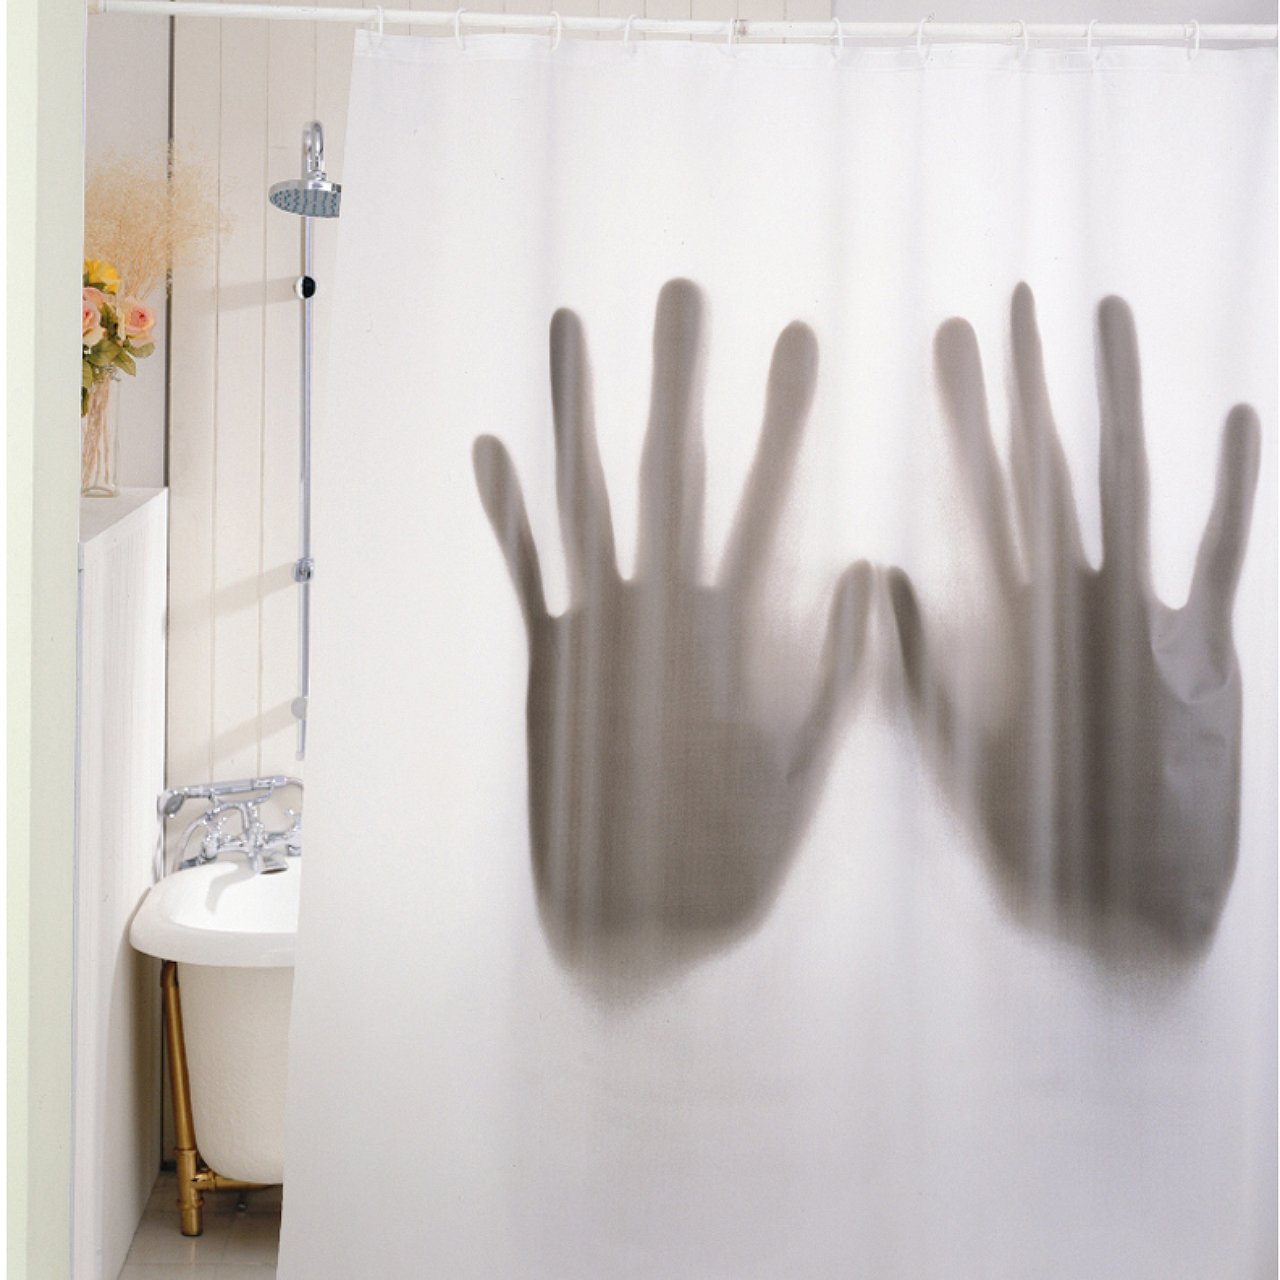 Scary shower curtain - Gift House International Scary Shower Curtain Amazon Co Uk Kitchen Home